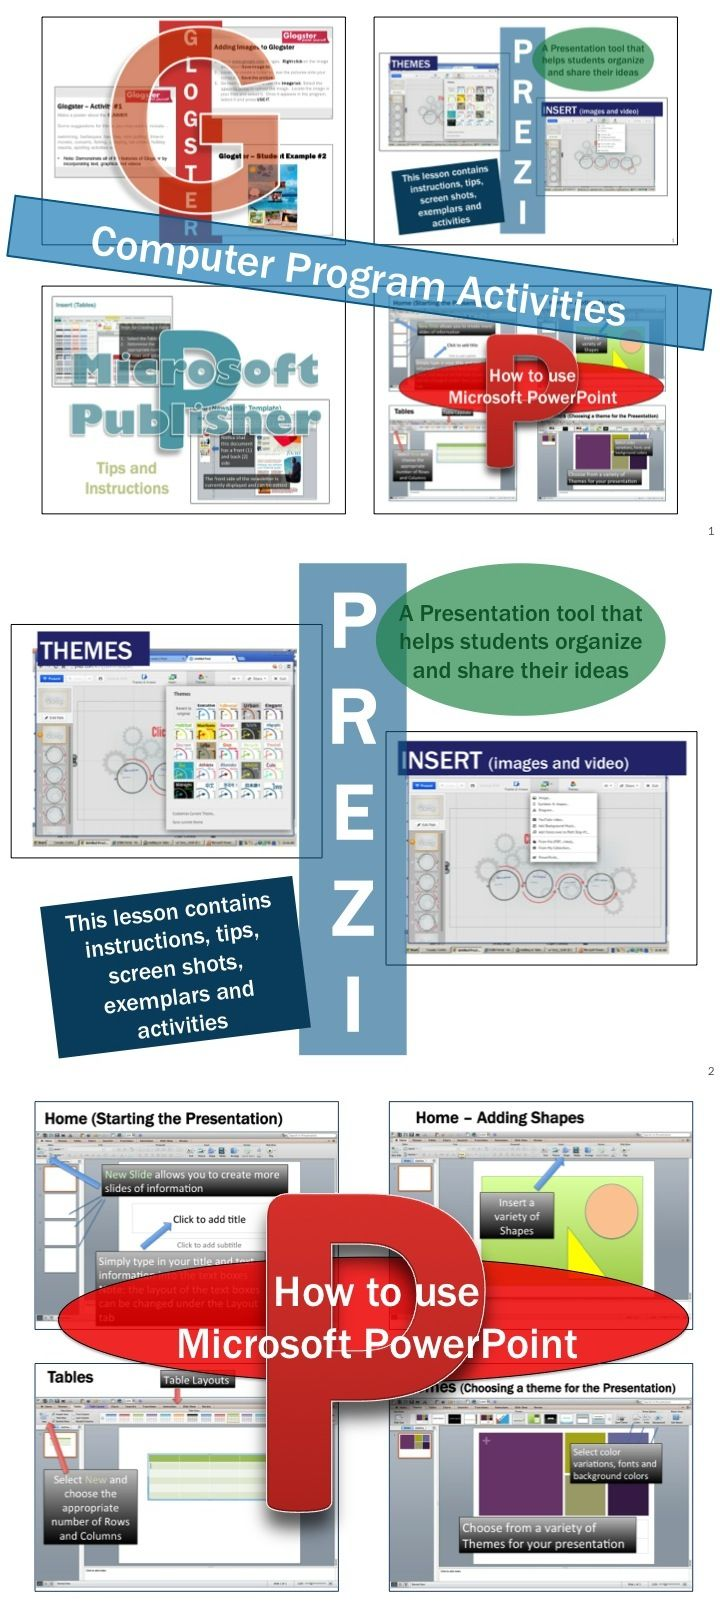 * This lesson contains instructions, screen shots and tips for using many software programs including Microsoft Word, Excel, PowerPoint, Publisher, Glogster, Prezi, MovieMaker, GoAnimate and Weebly.  * Several rubrics, marking schemes and student exemplars are provided for many of the lessons and activities.